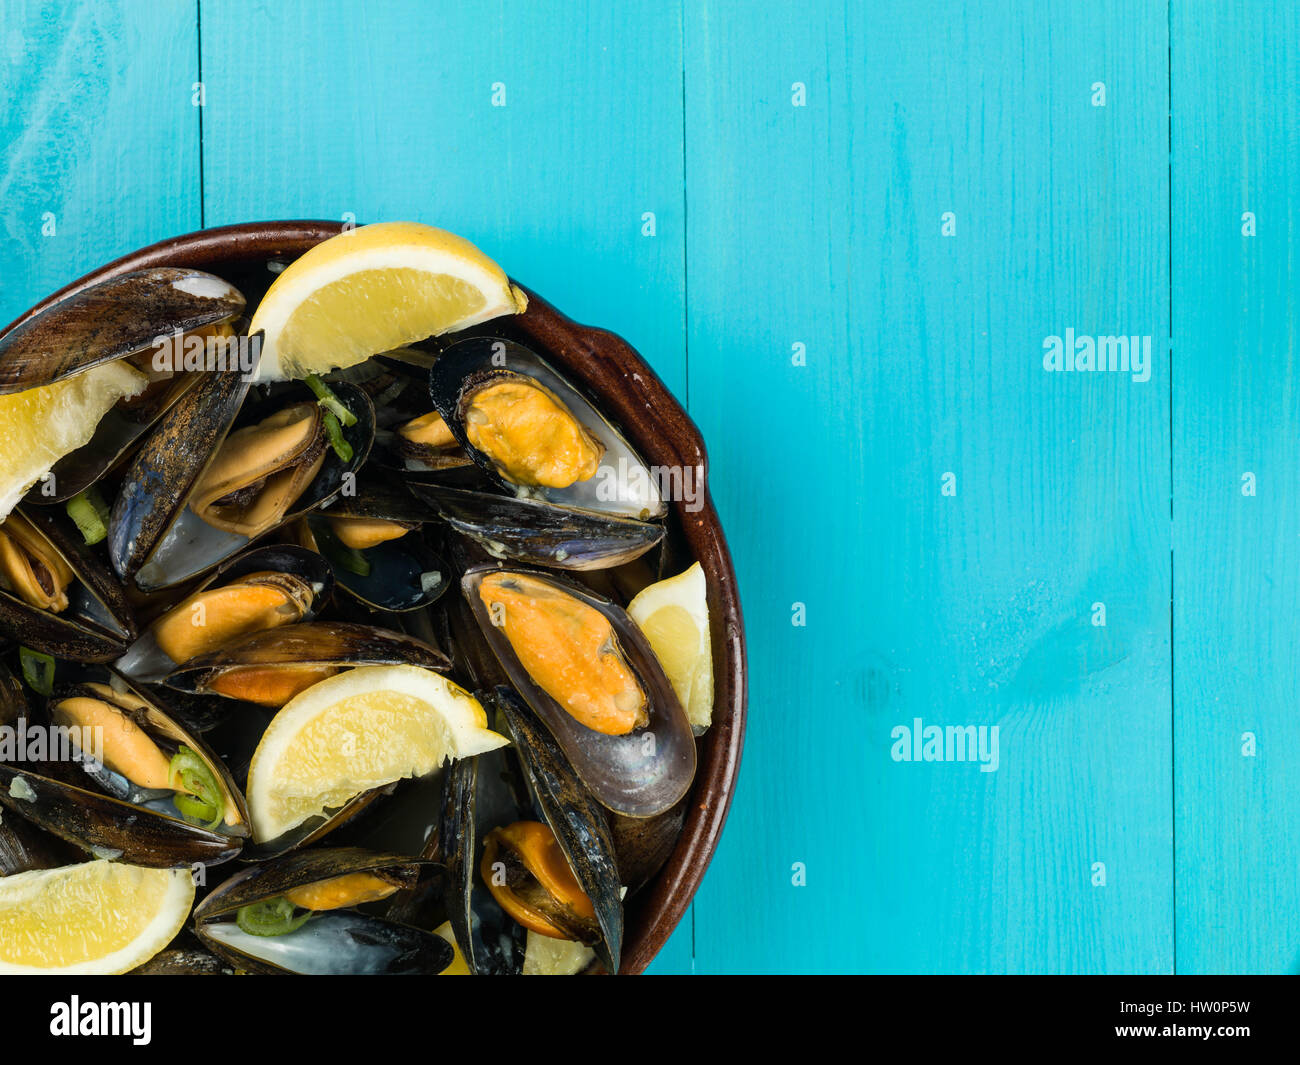 Rope Grown Mussels in a Garlic and Shallot Sauce With Slices of Lemon - Stock Image